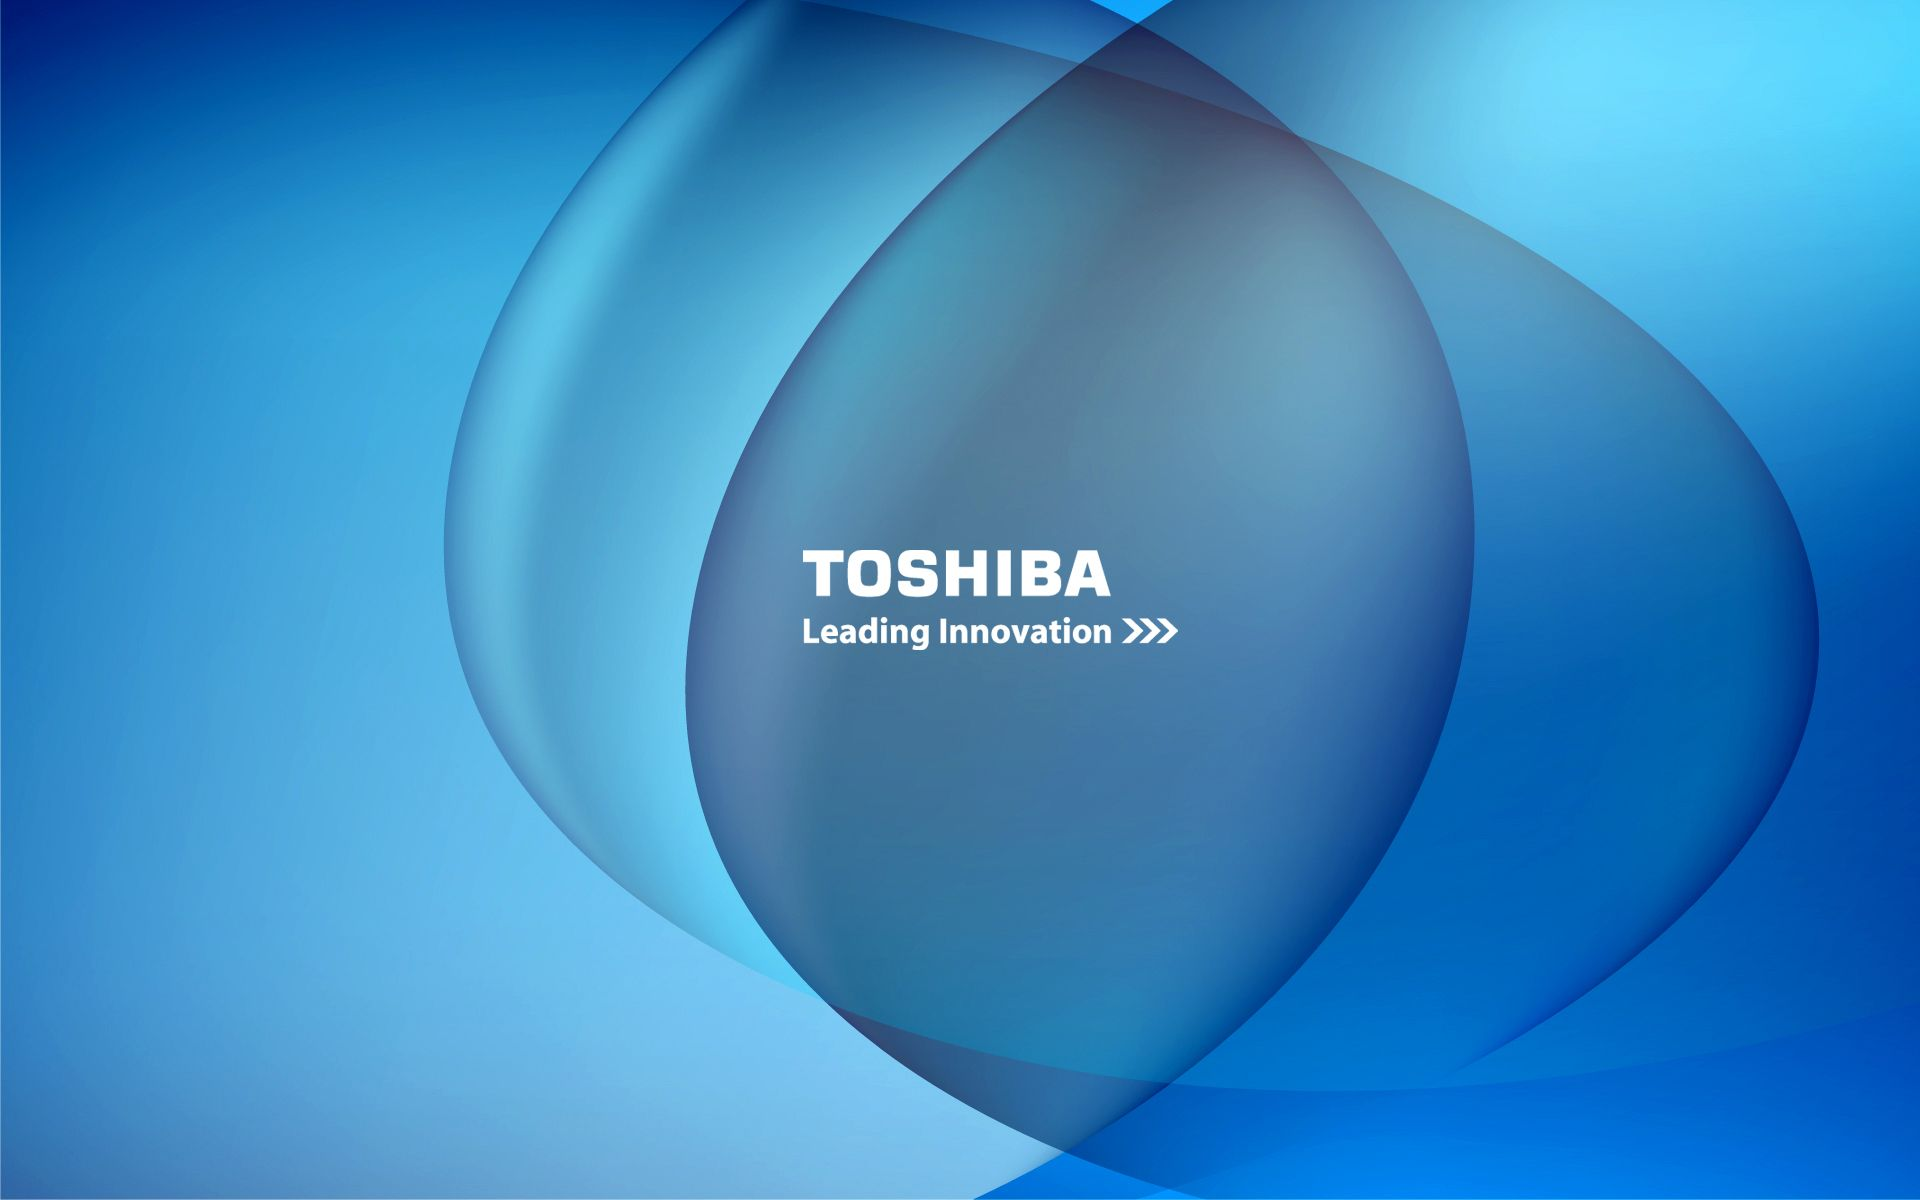 Wallpaper Toshiba By RuiFernandes On DeviantArt 1920—1200